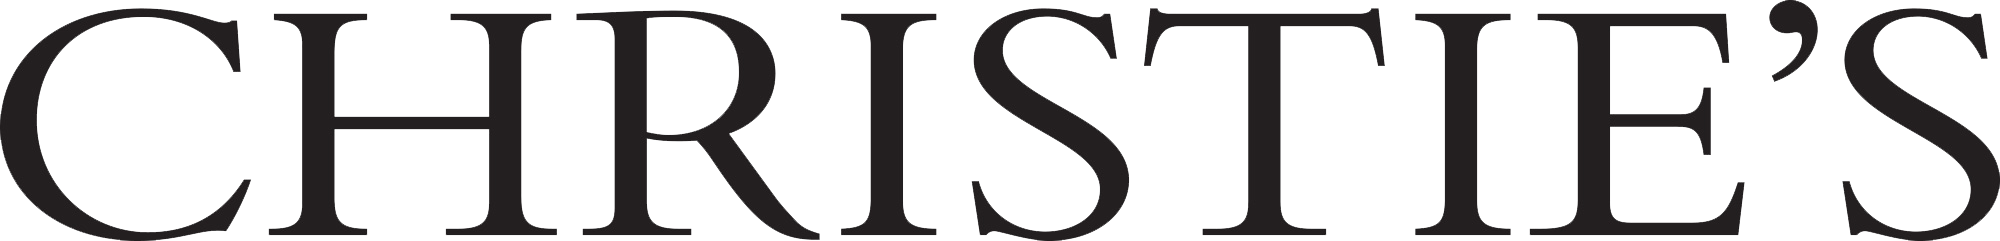 Christie's logo with transparency